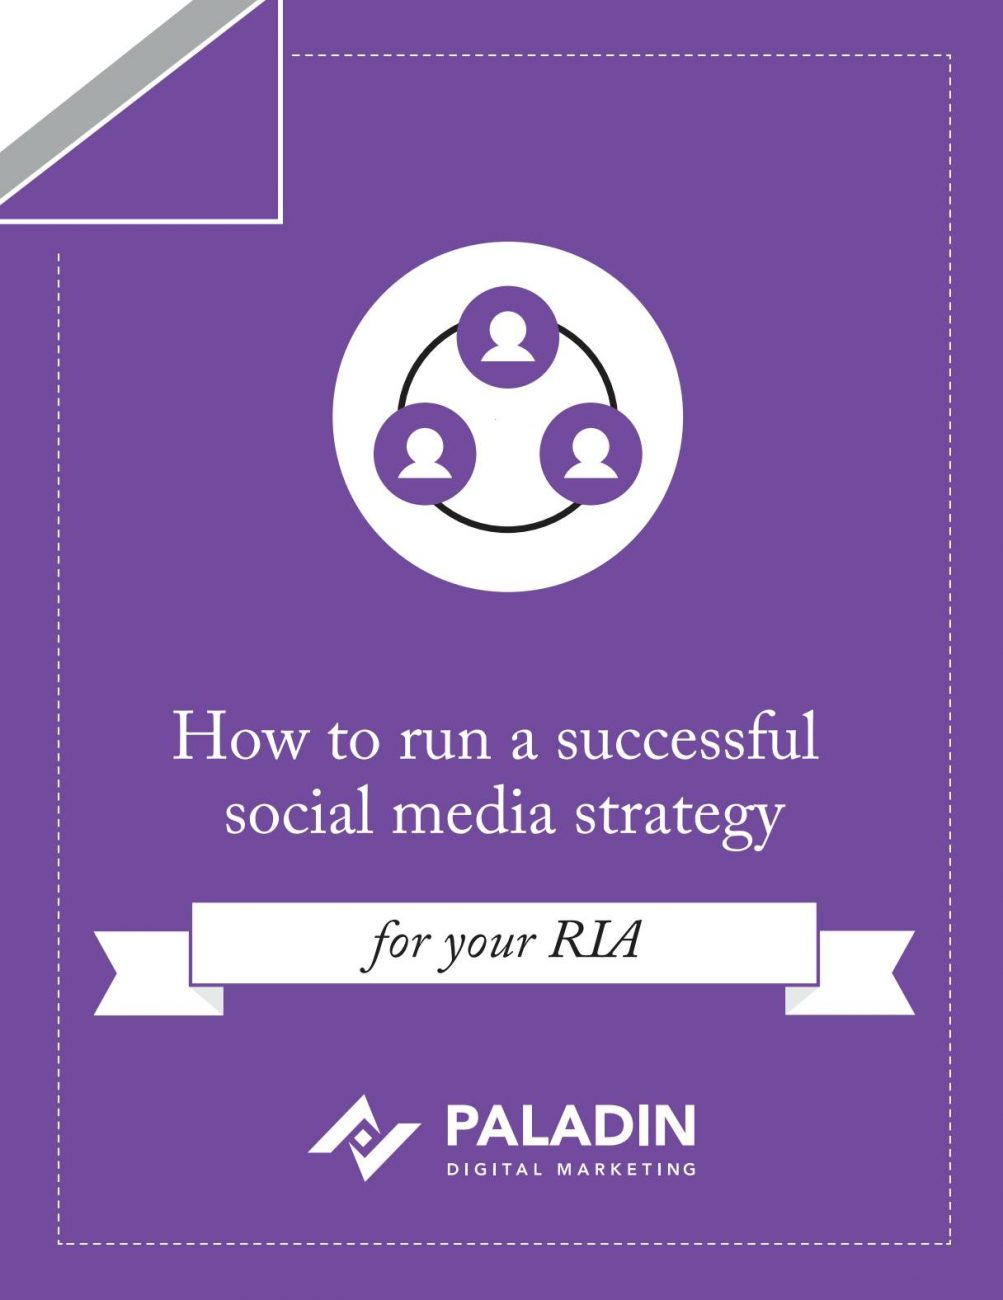 How to execute a successful social media strategy for your RIA.